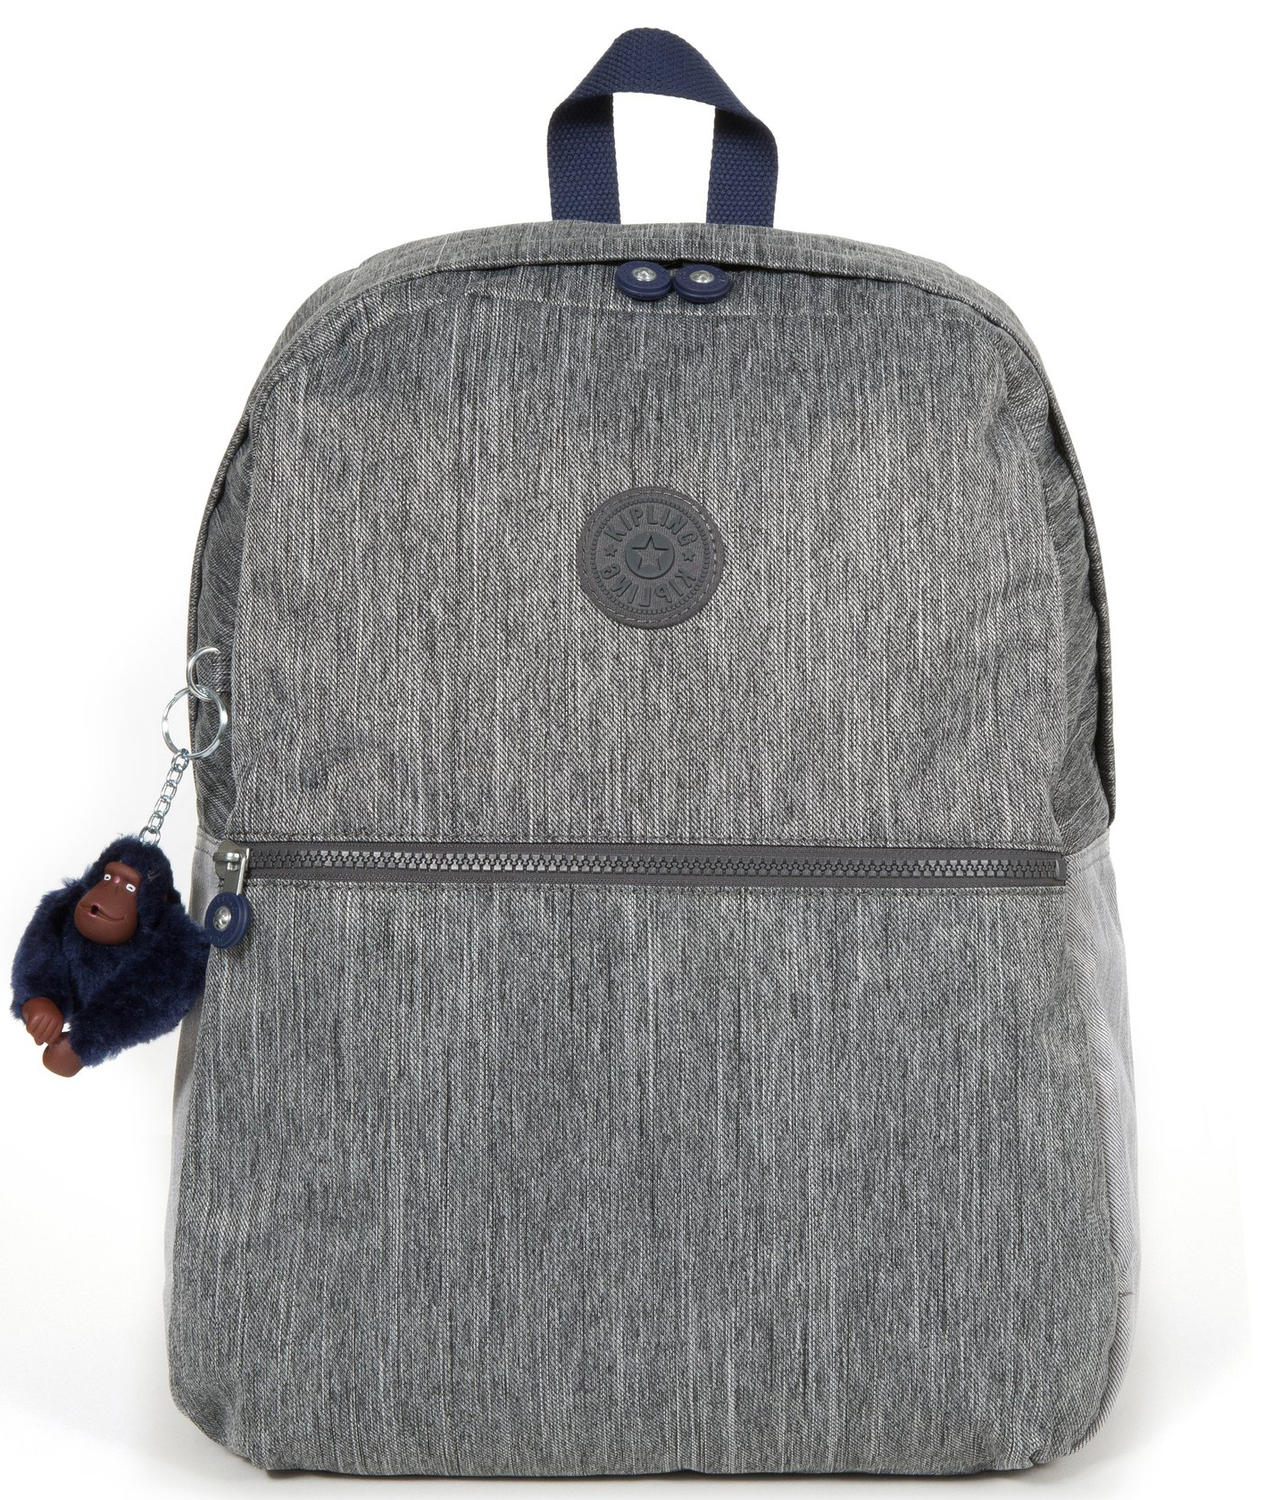 Zaino Kipling Emery Ash Denim Bl Acquista A Prezzi Outlet!